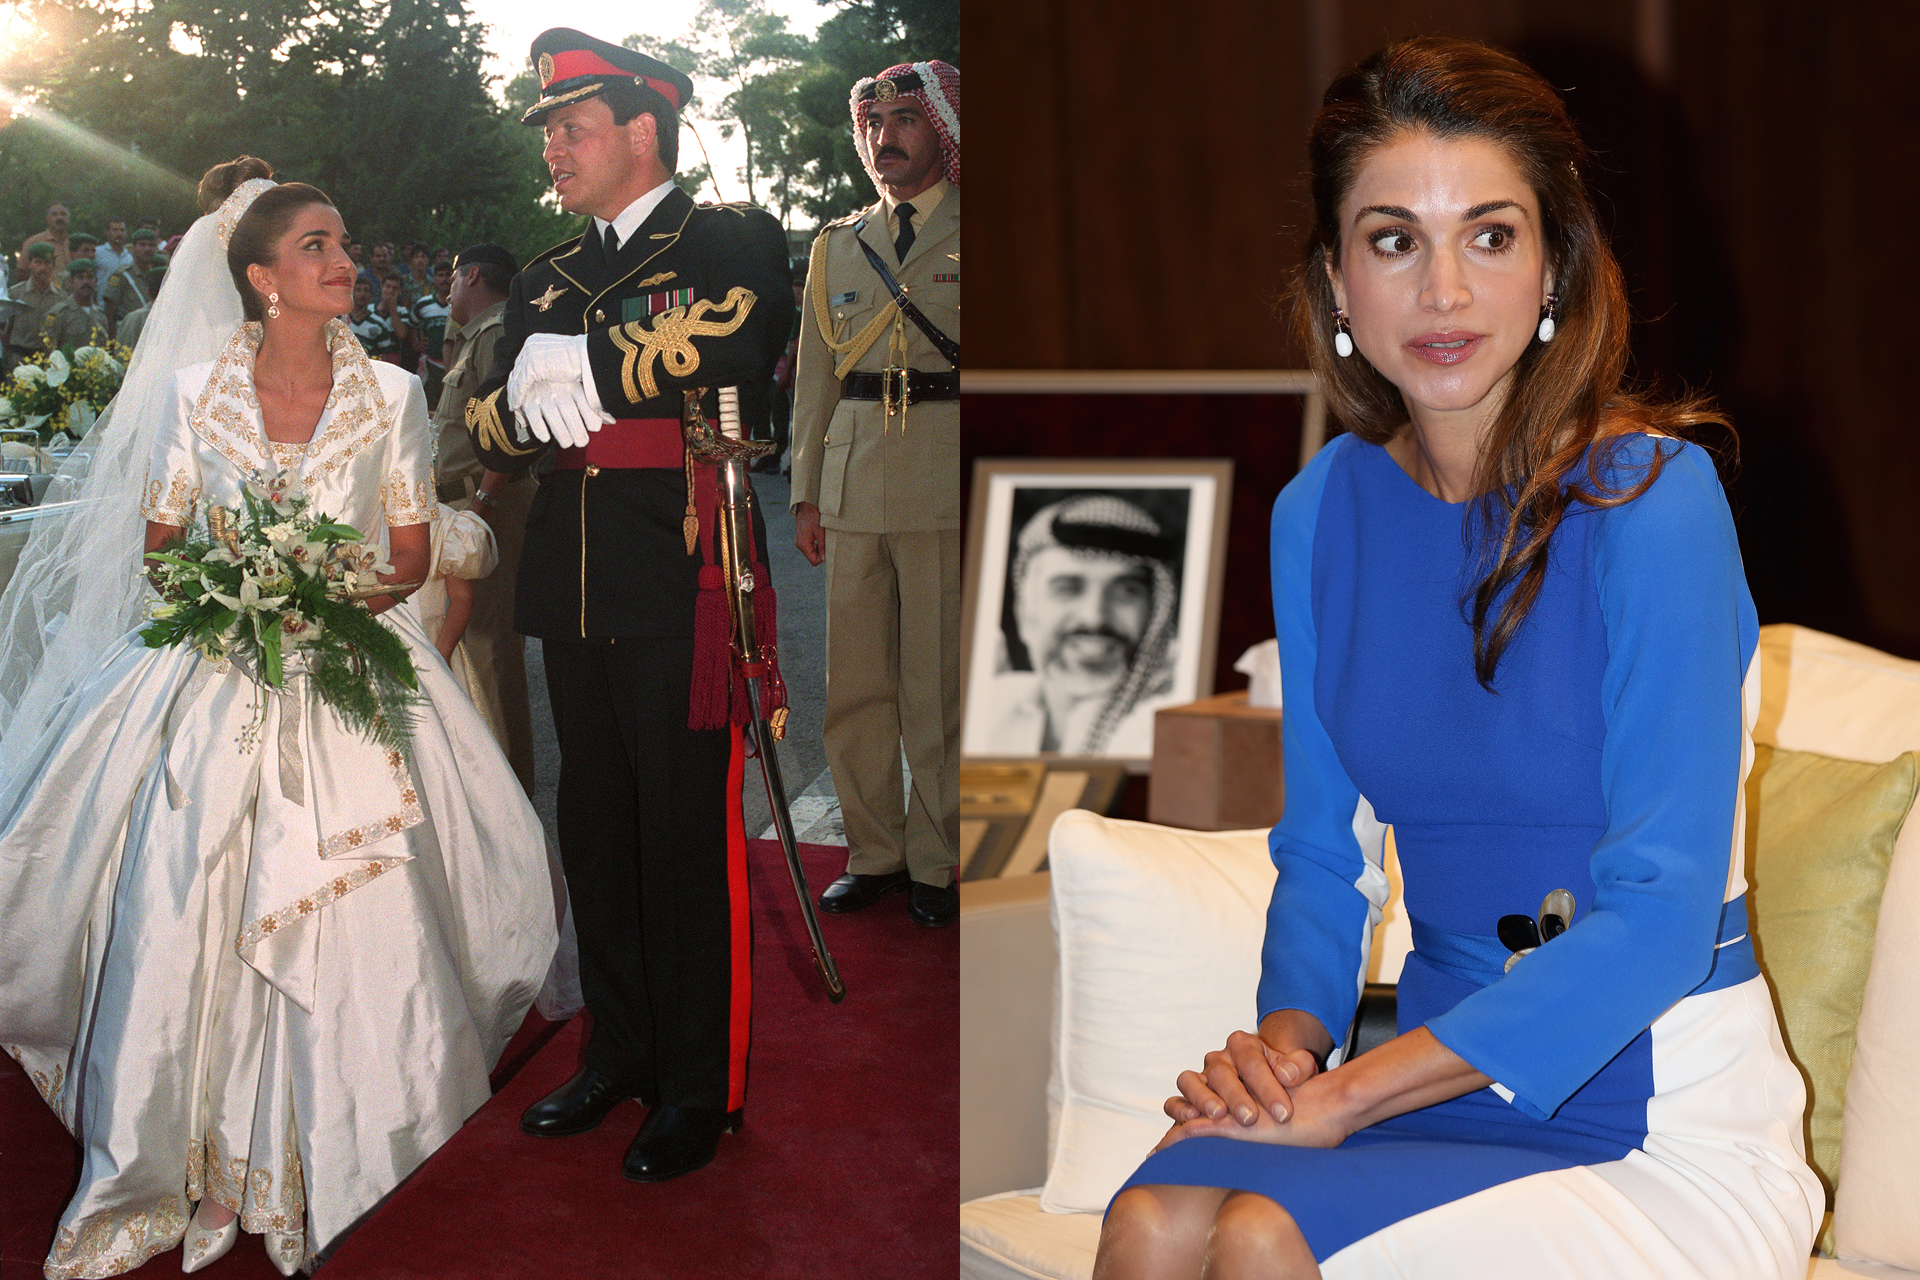 King abdullah daughter wedding